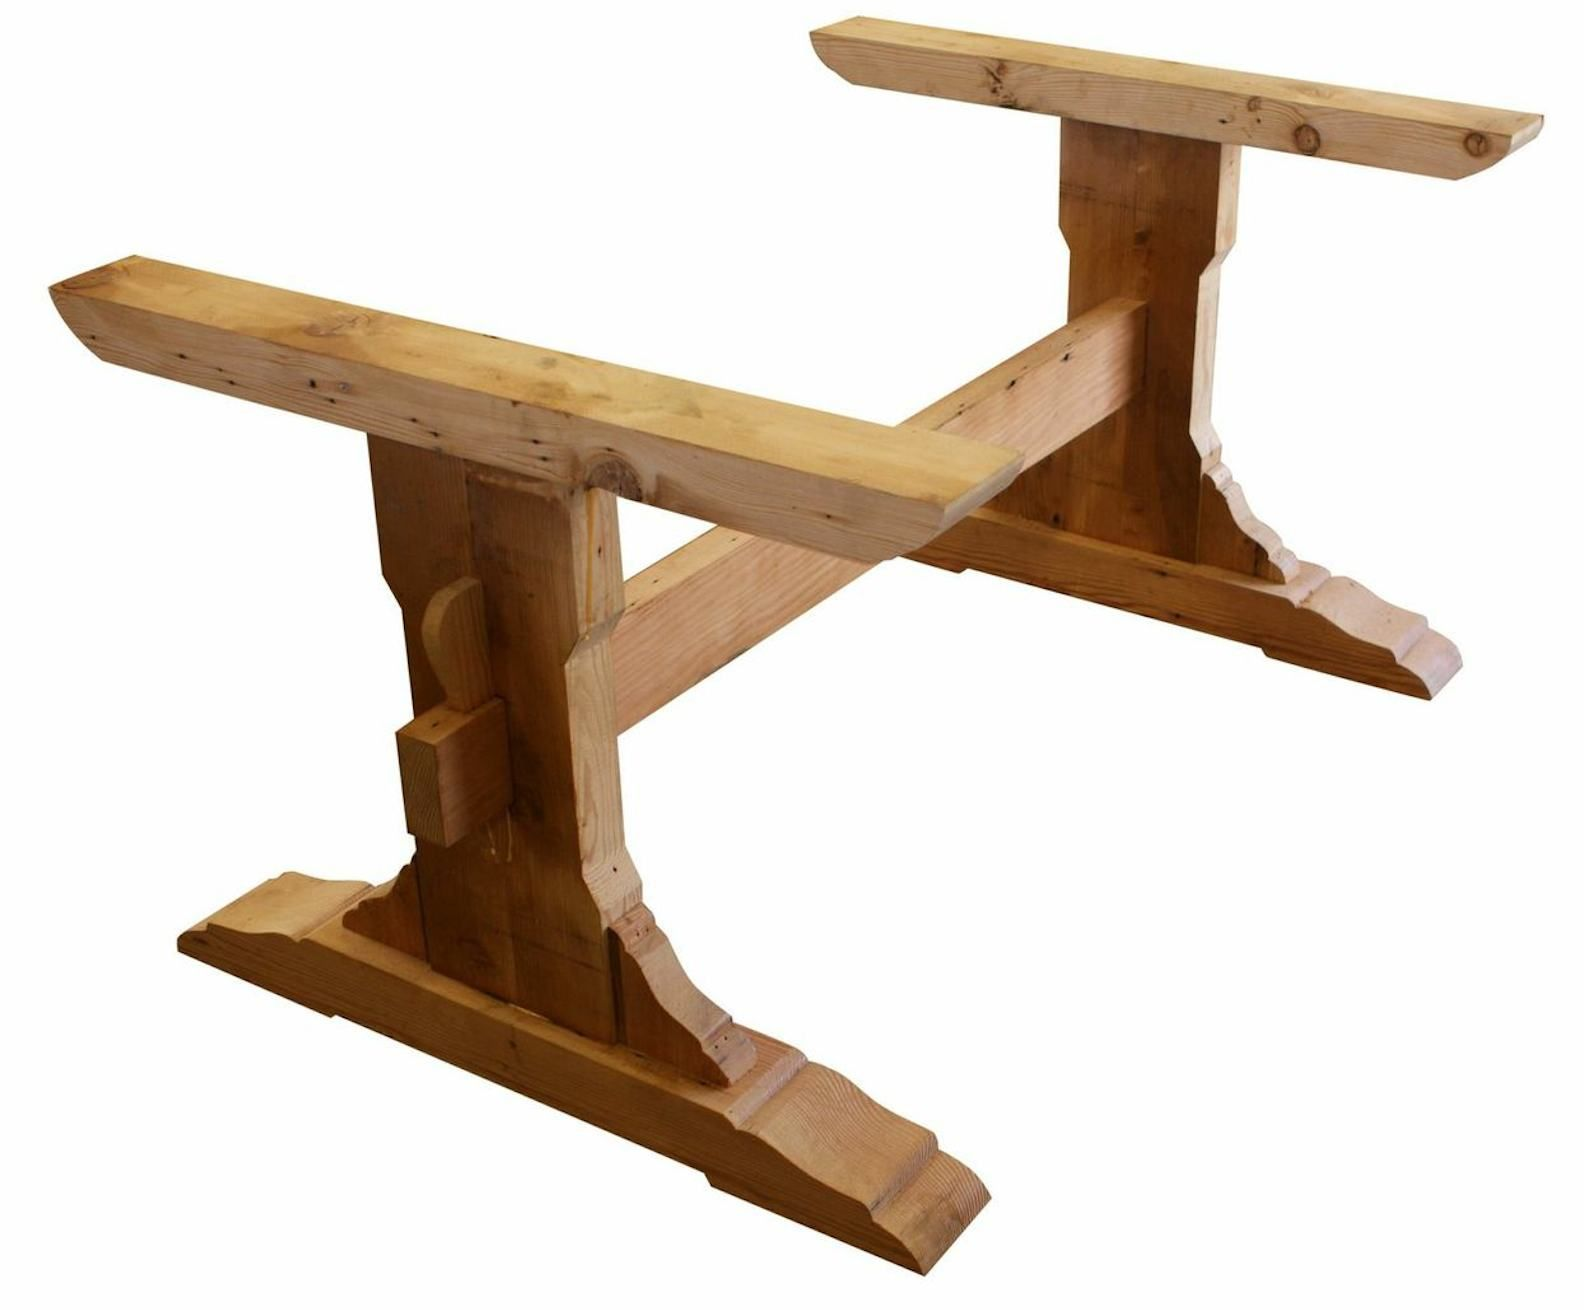 Image of reclaimed wood trestle table woodworking for Wooden table design